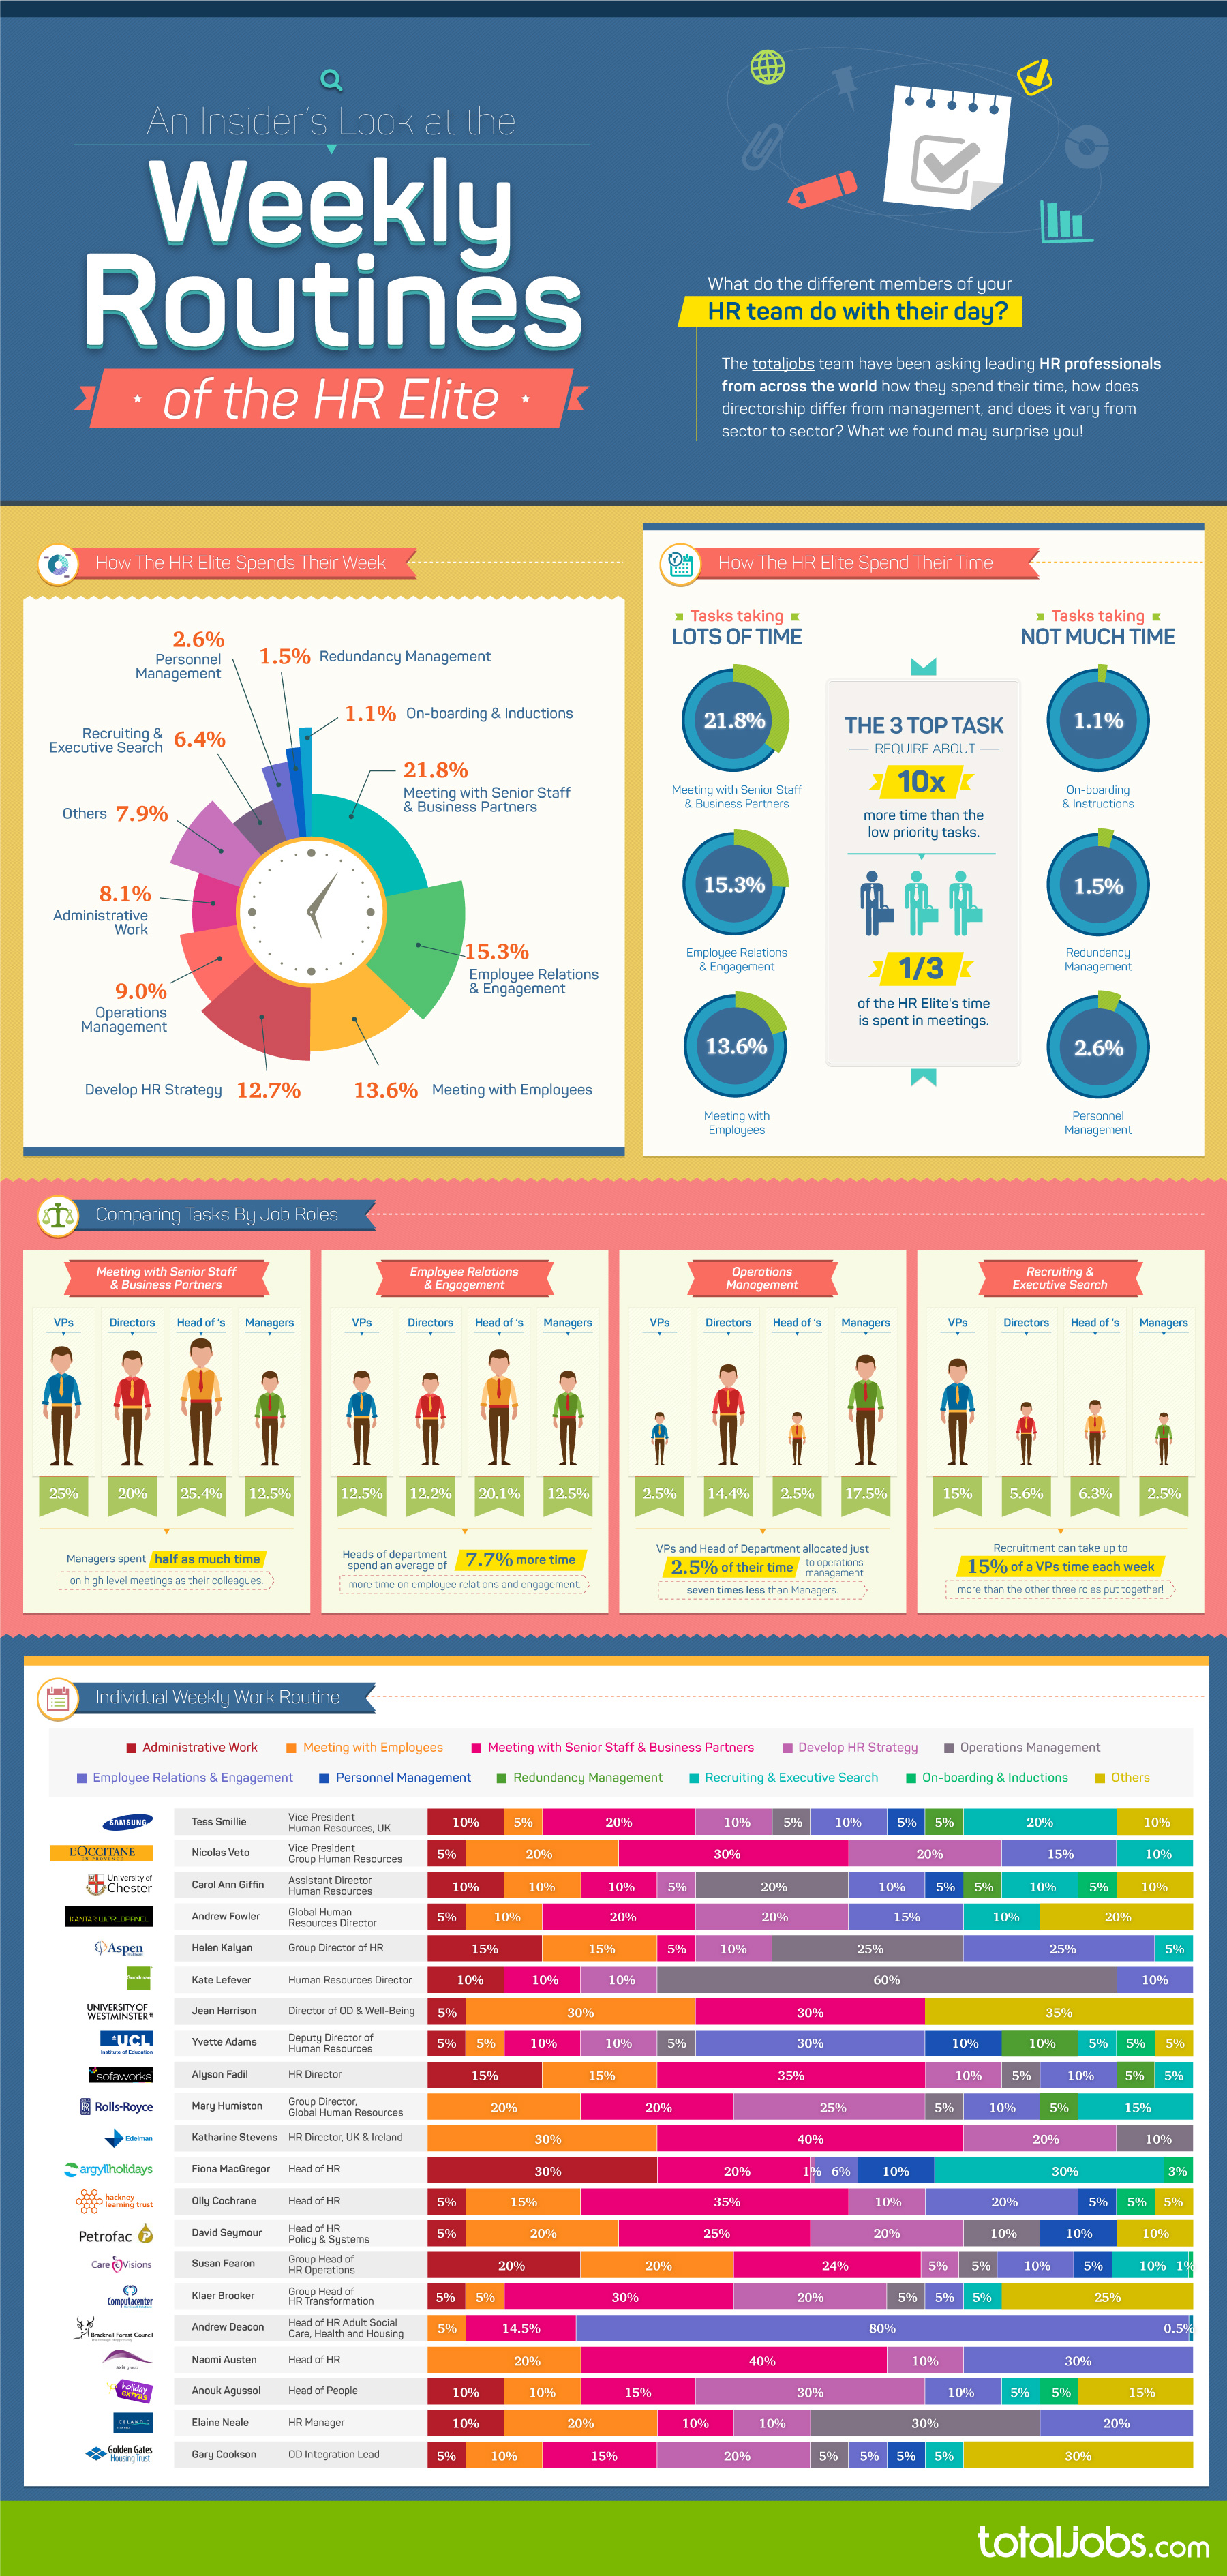 infographic provided by totaljobs